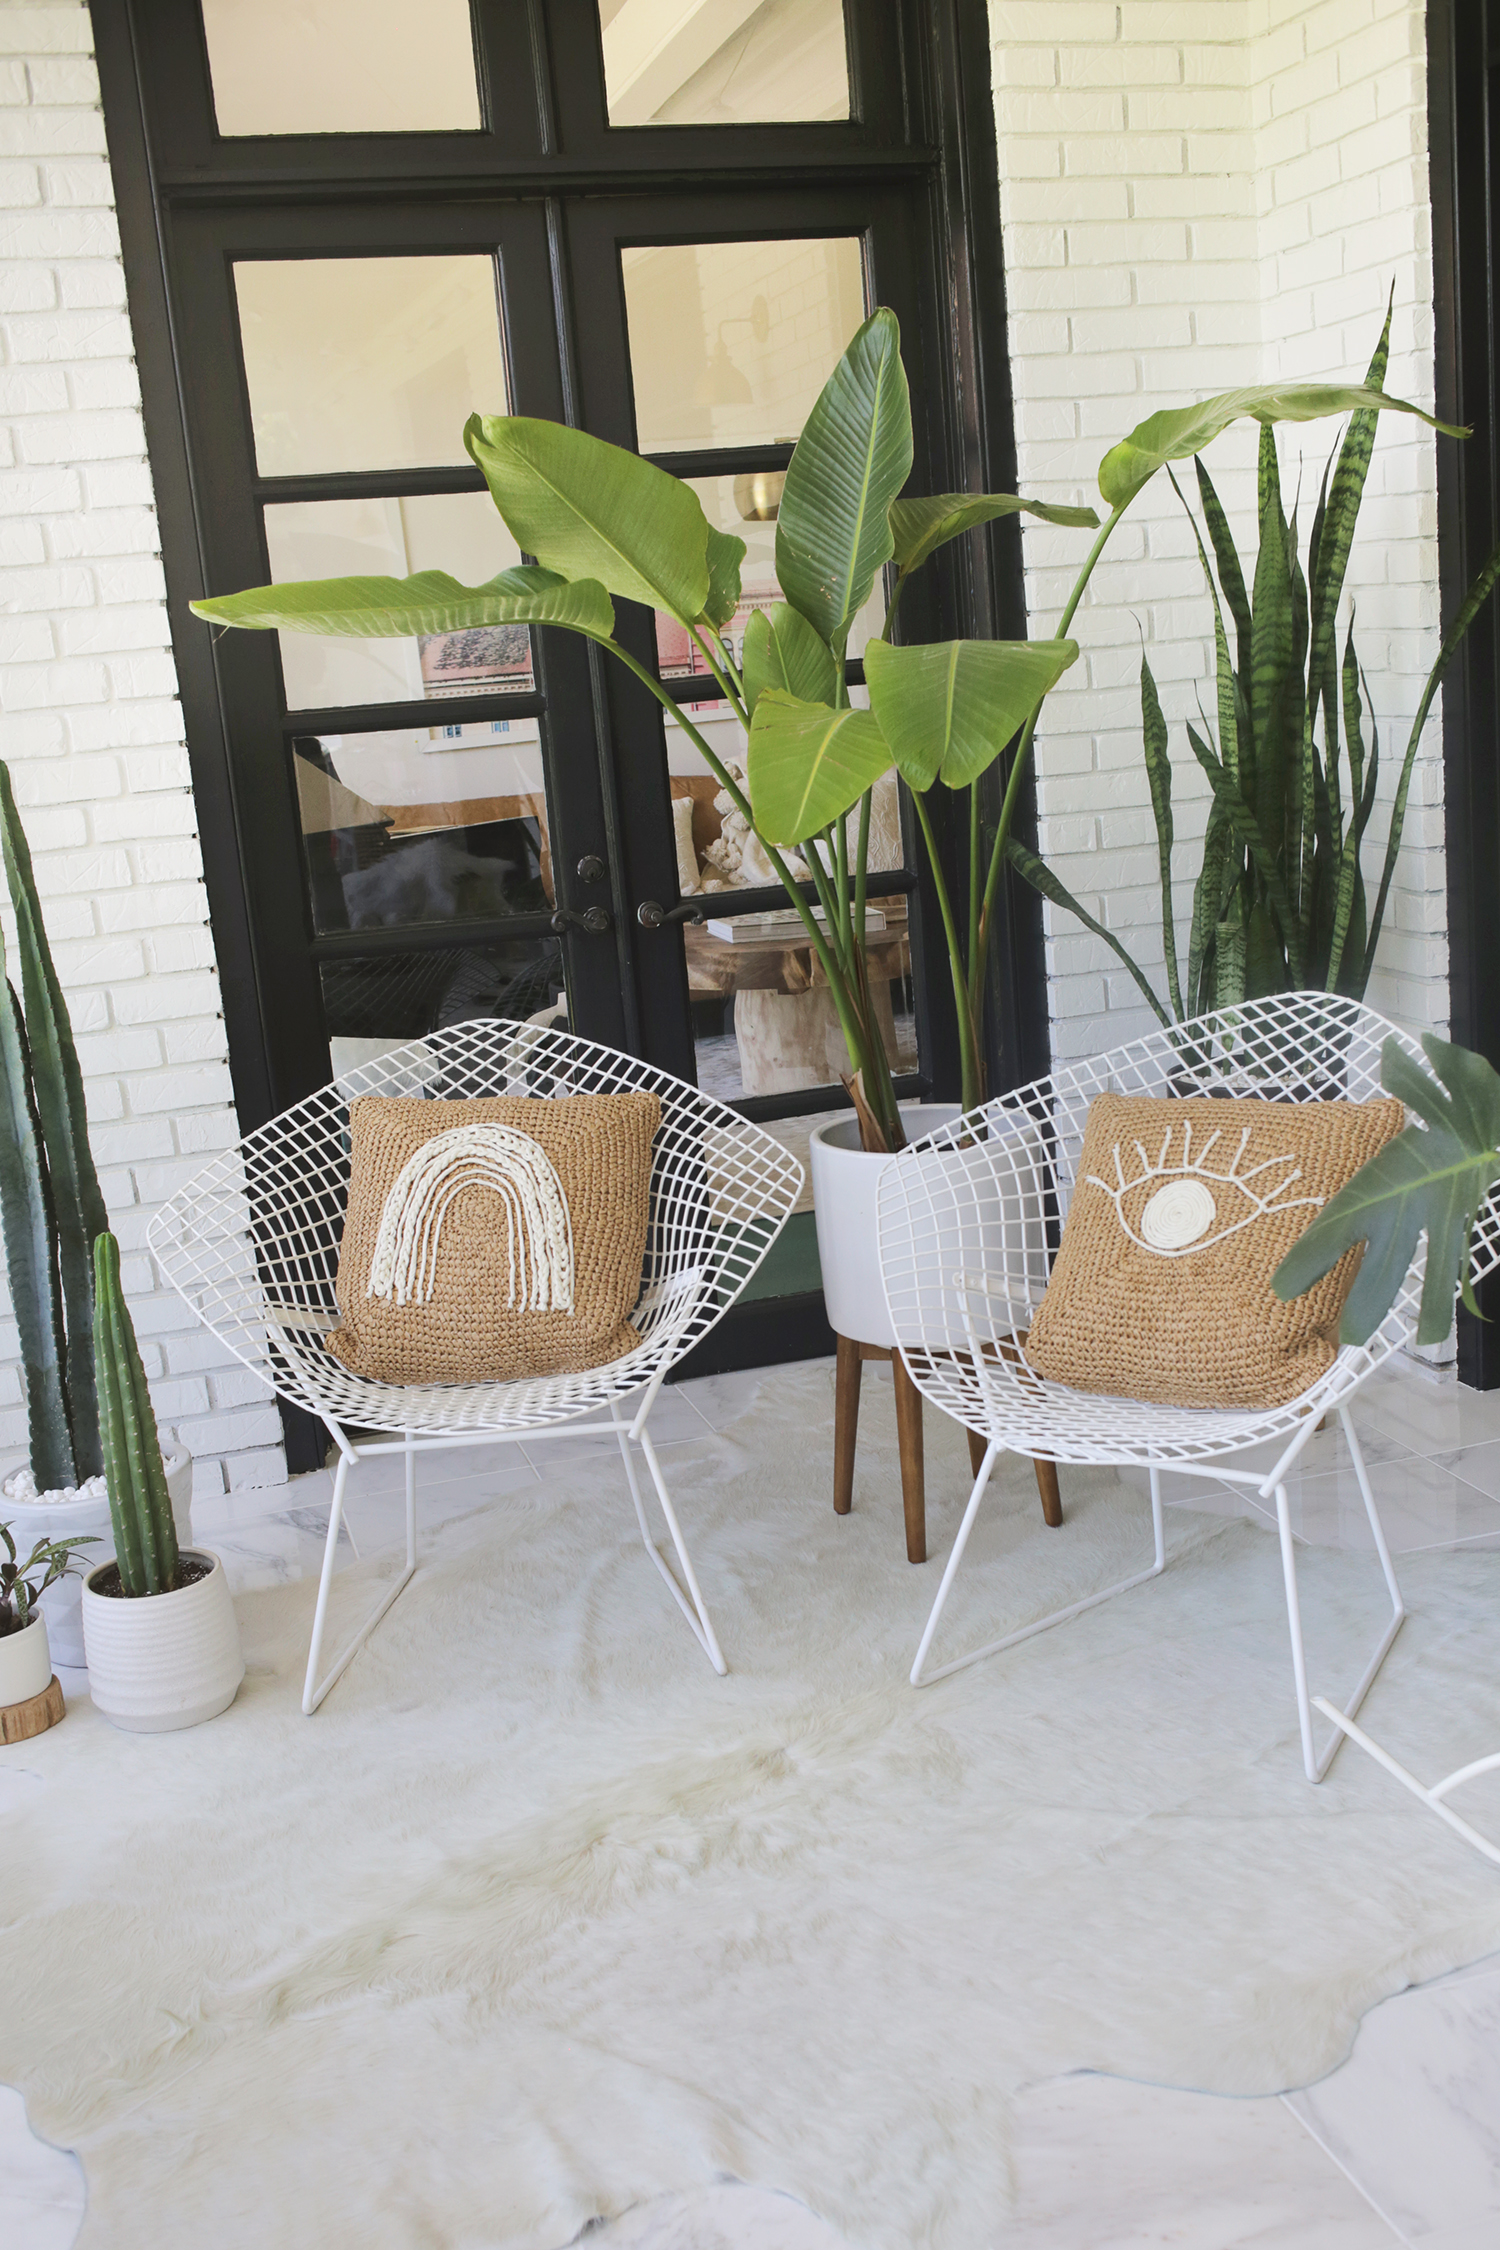 How to weather-proof your metal furniture for the outdoors